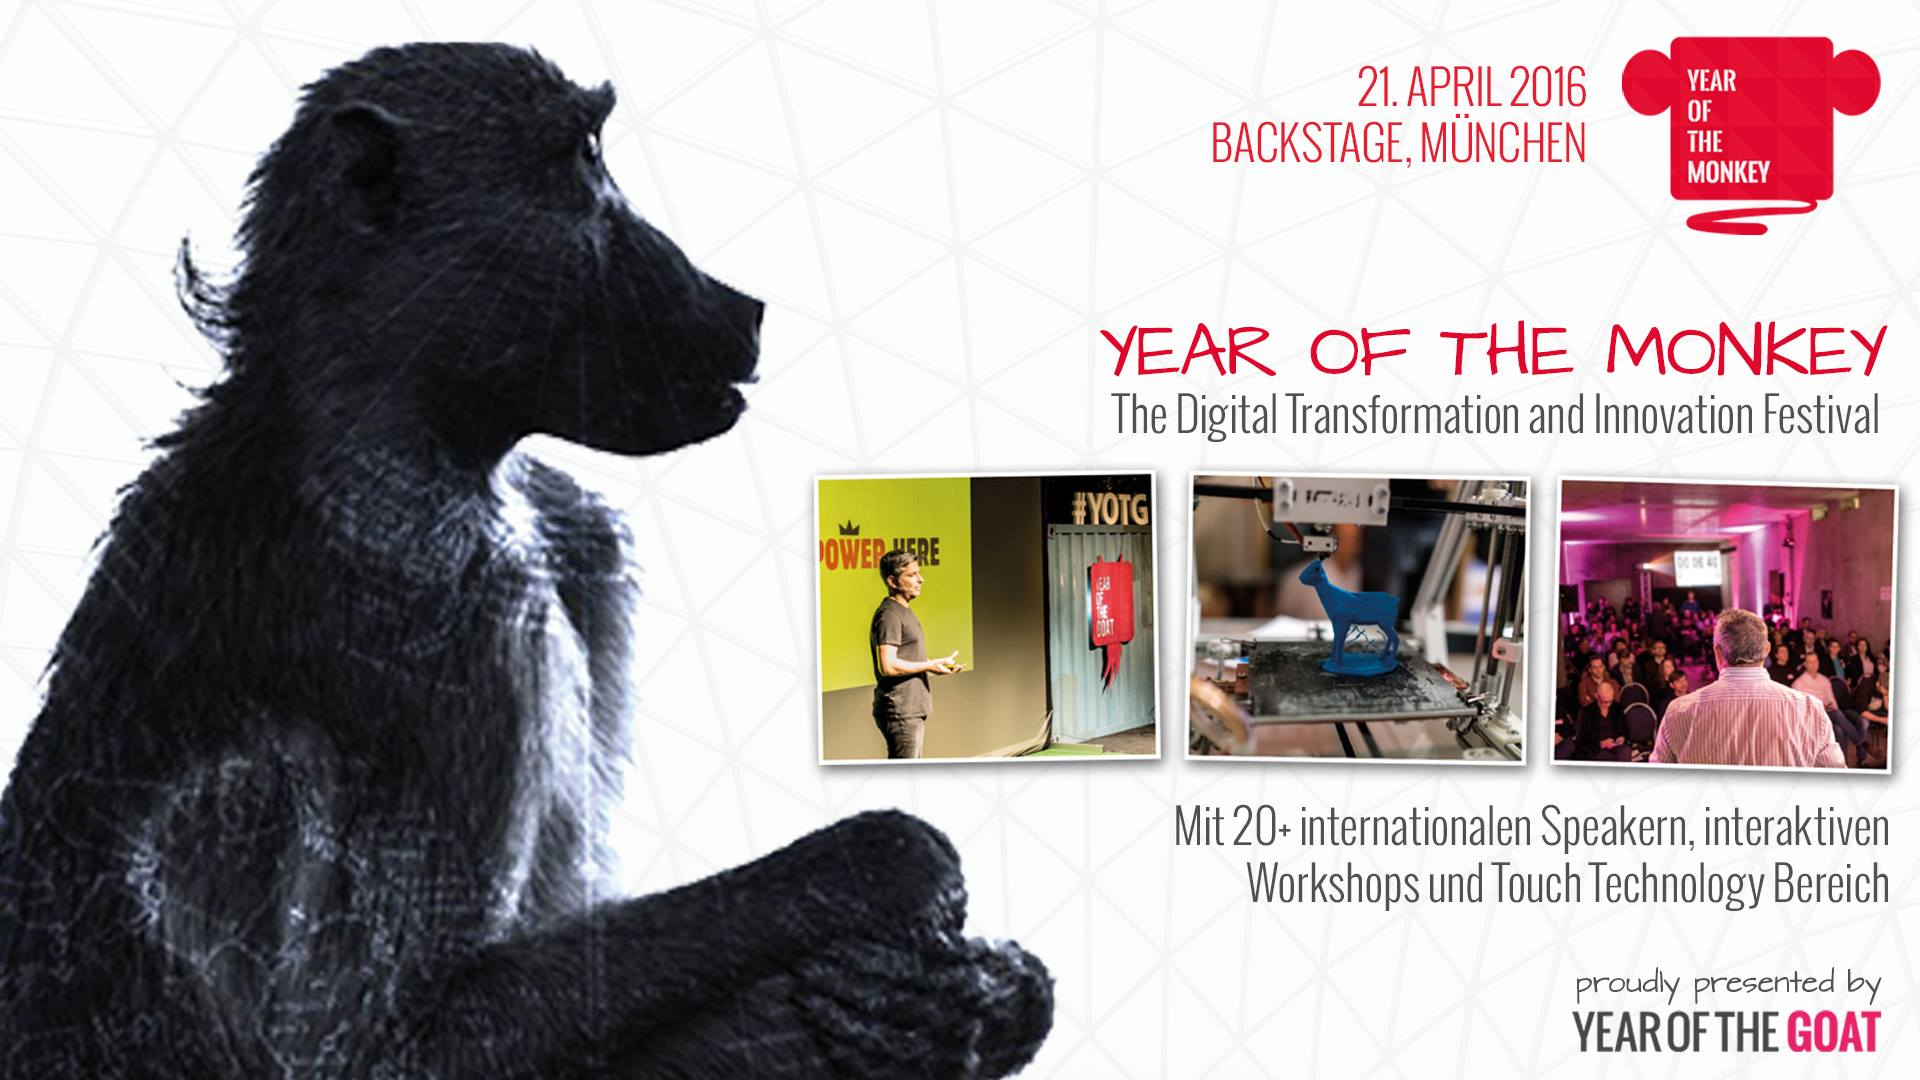 Year of the Monkey - The Digital Innovation Festival am 21. April 2016 im Backstage München.